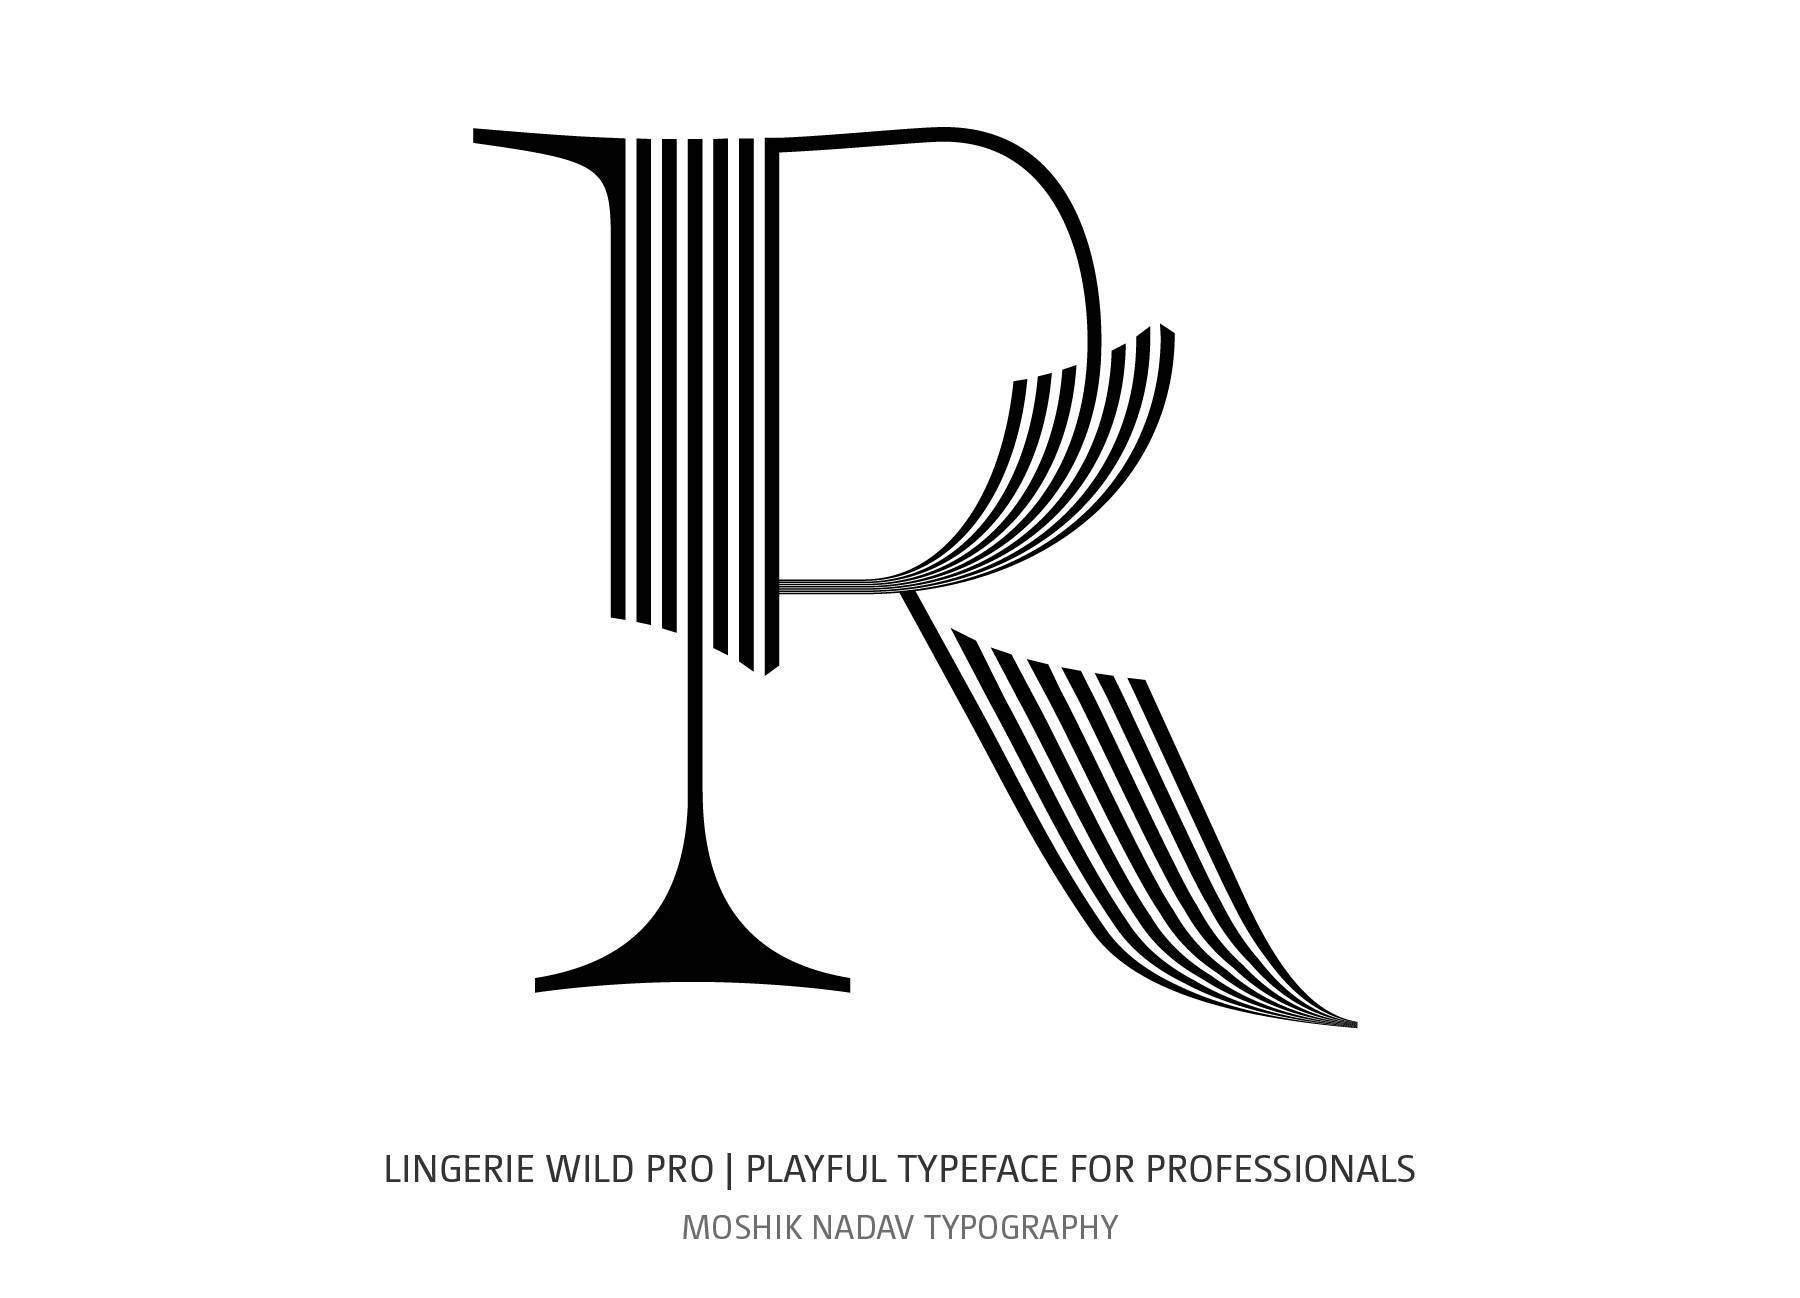 Super sexy R letter made with Lingerie Wild Pro Typeface by Moshik Nadav Typography